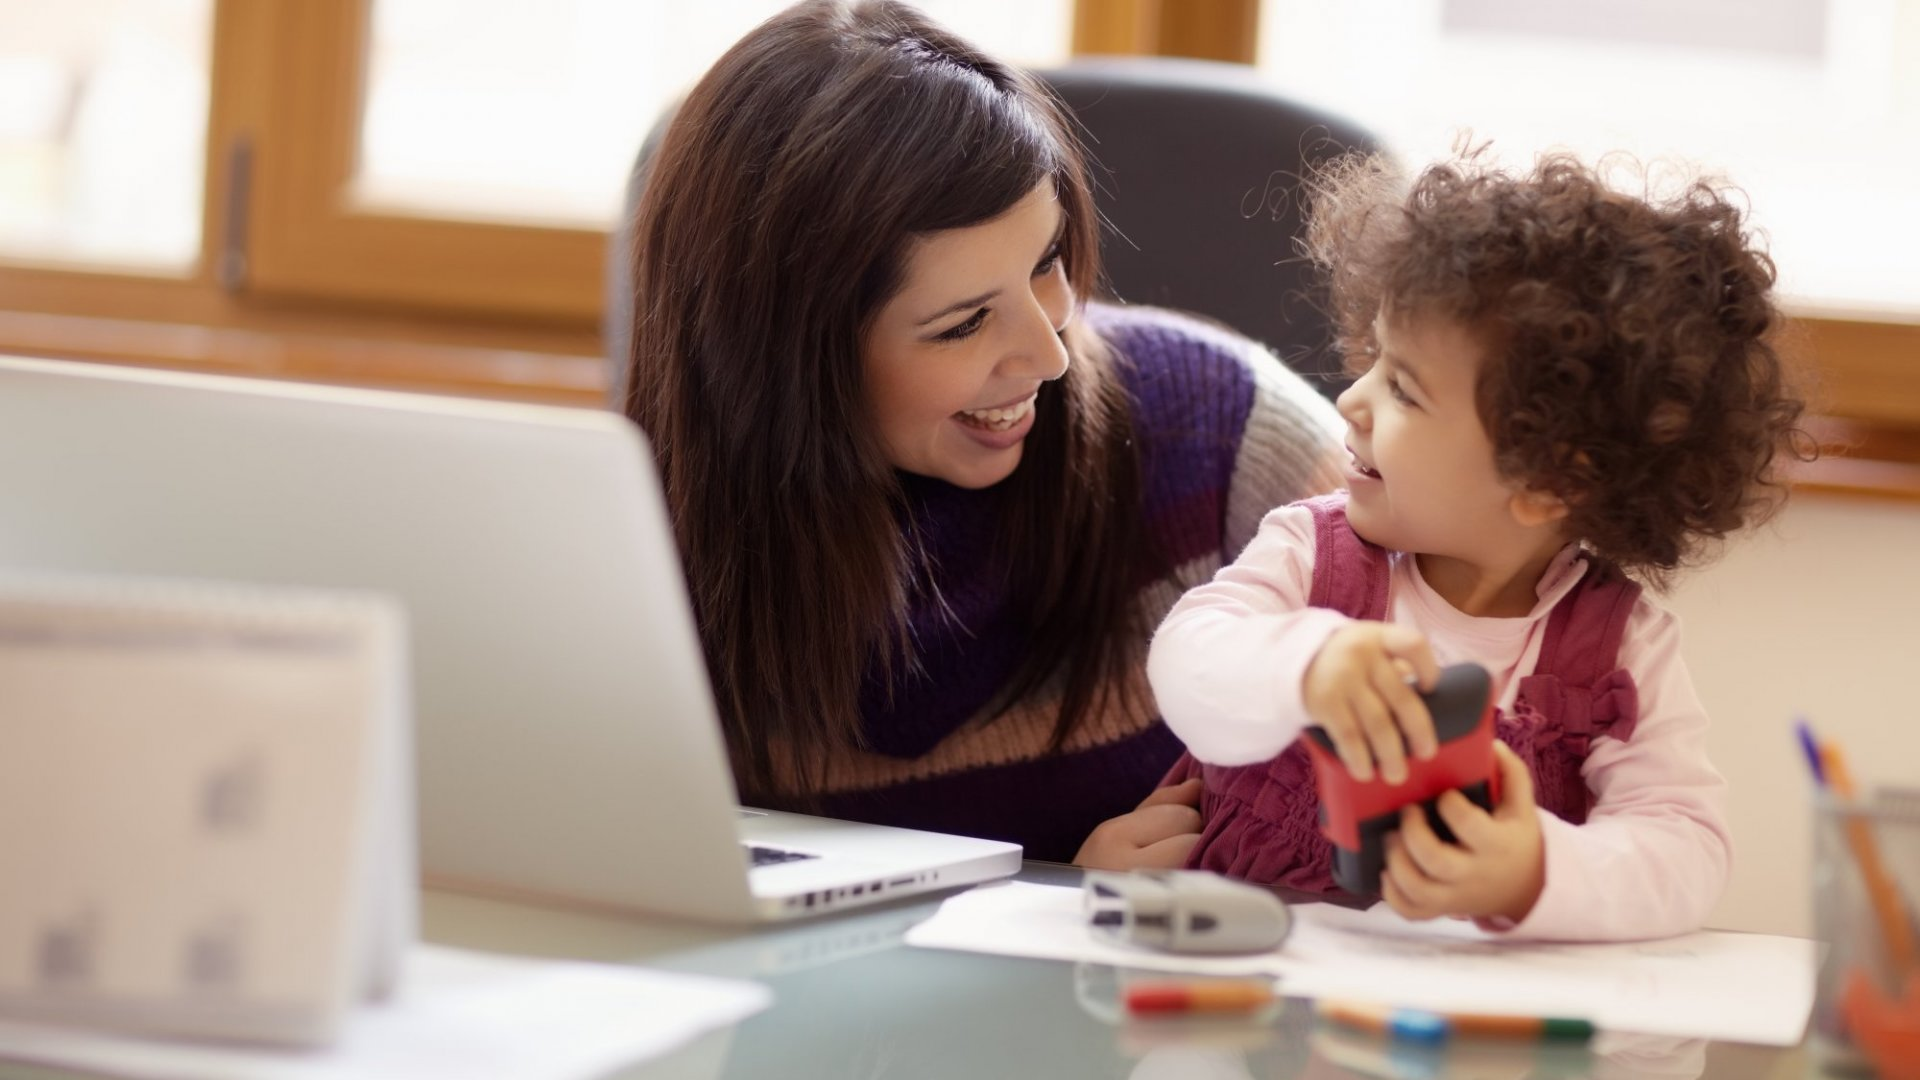 3 Ways Working Moms Impact their Kids, According to Harvard Researchers